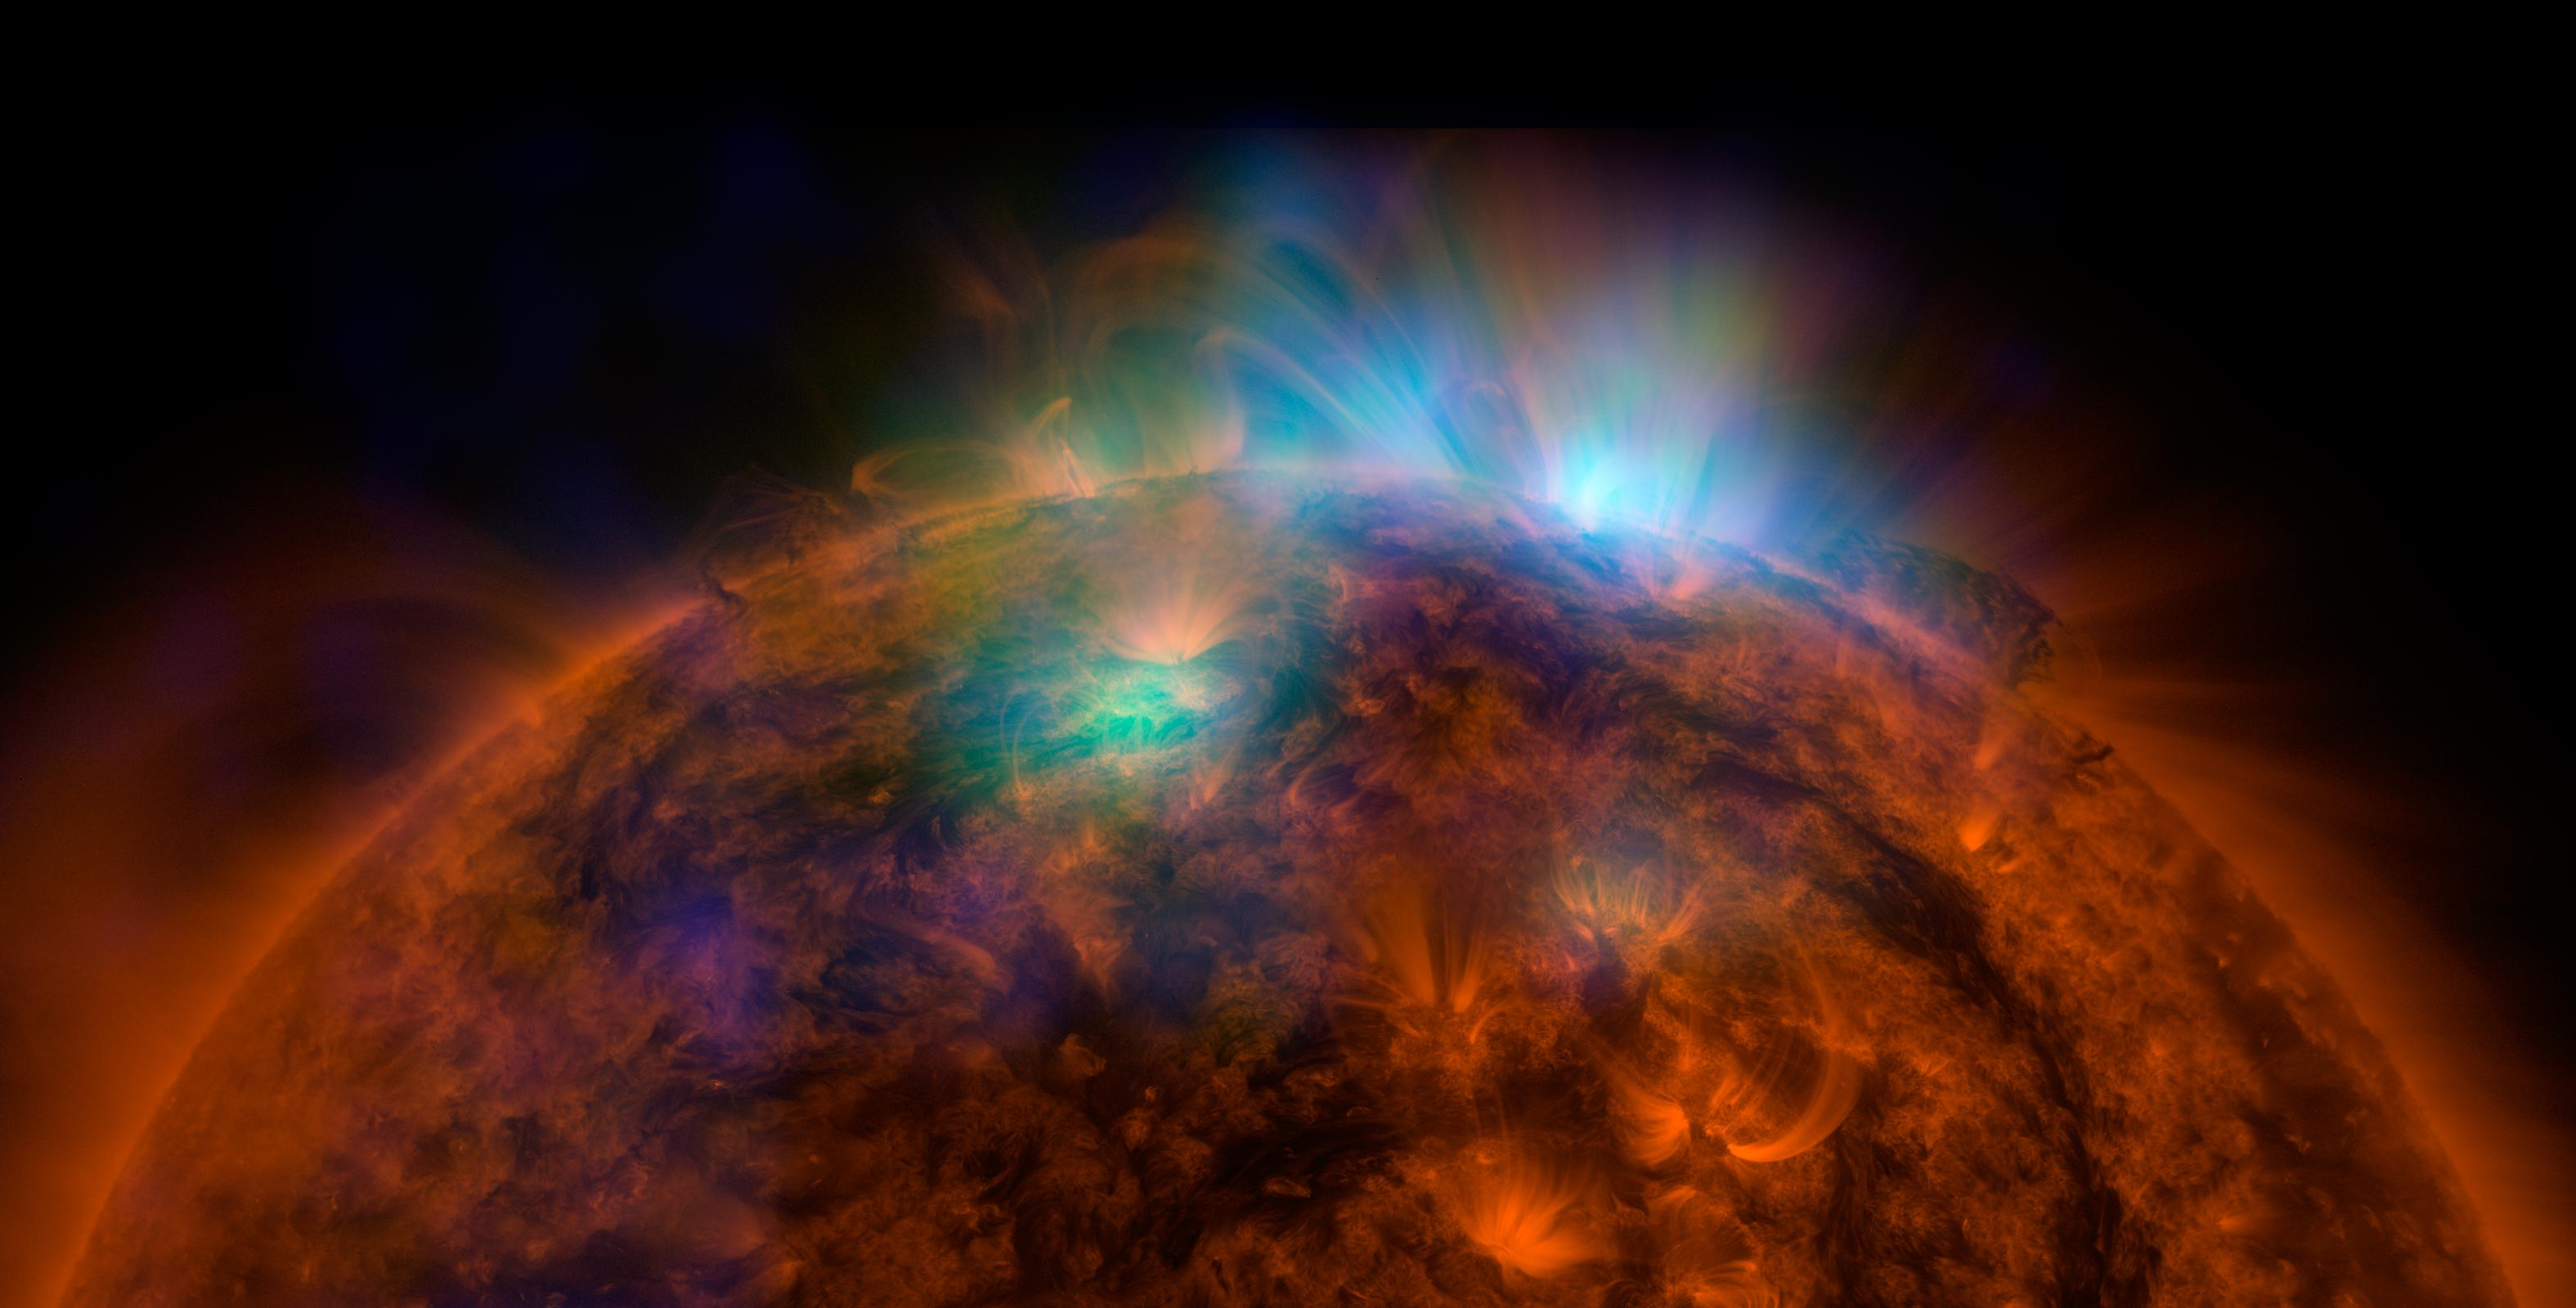 X-Rays streaming from the sun